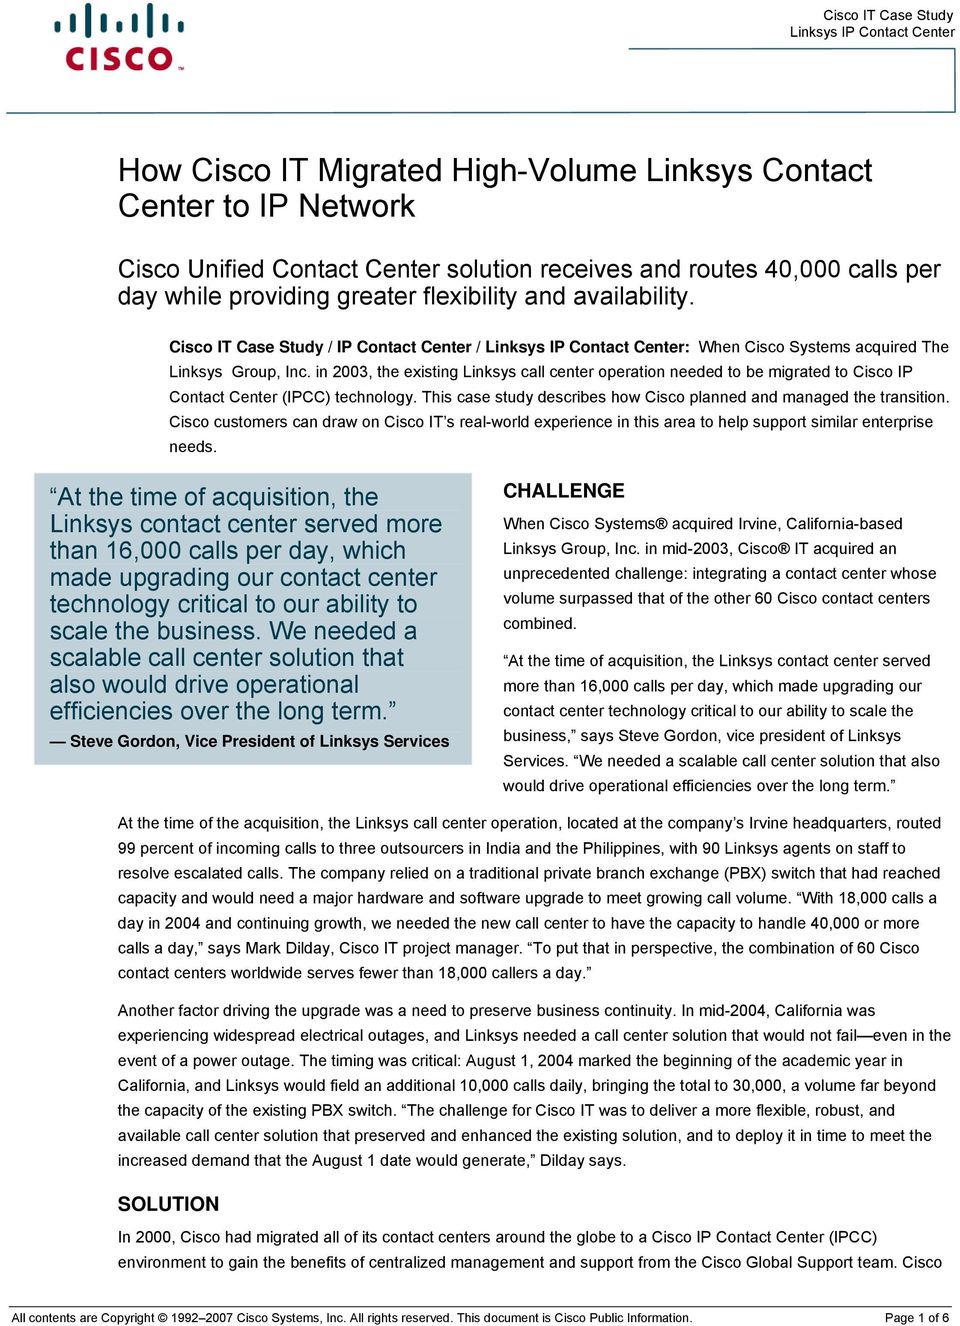 in 2003, the existing Linksys call center operation needed to be migrated to Cisco IP Contact Center (IPCC) technology. This case study describes how Cisco planned and managed the transition.